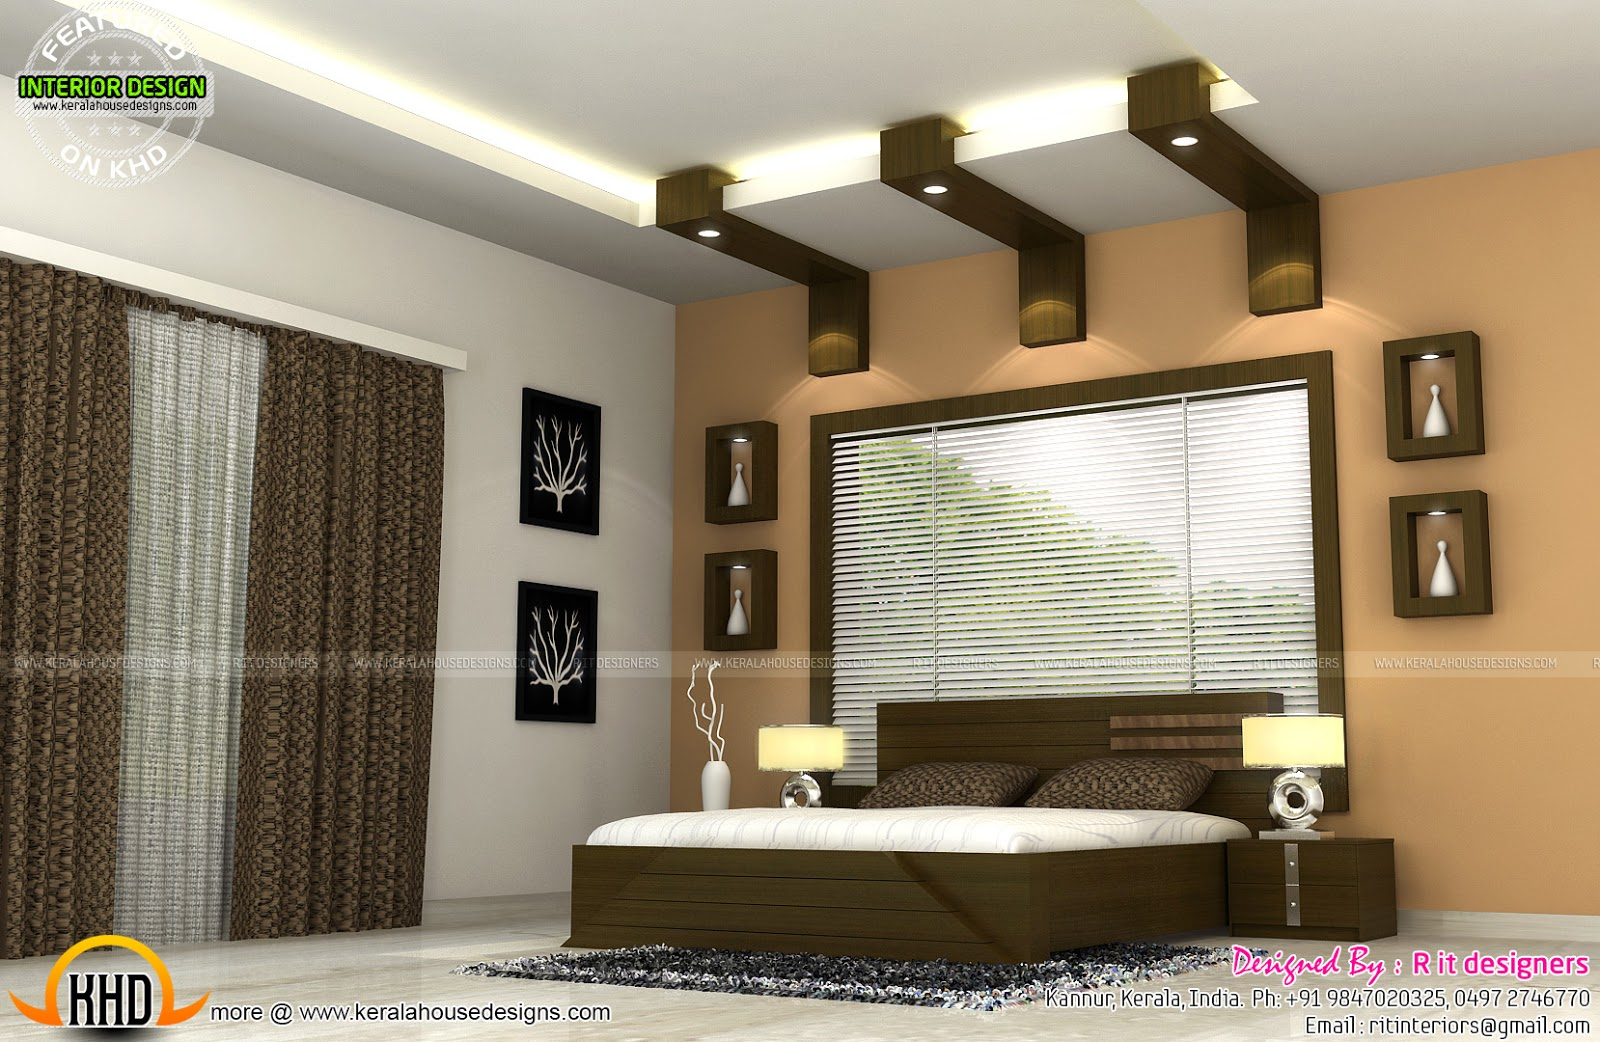 Interiors of bedrooms and kitchen kerala home design and Home interior design indian style